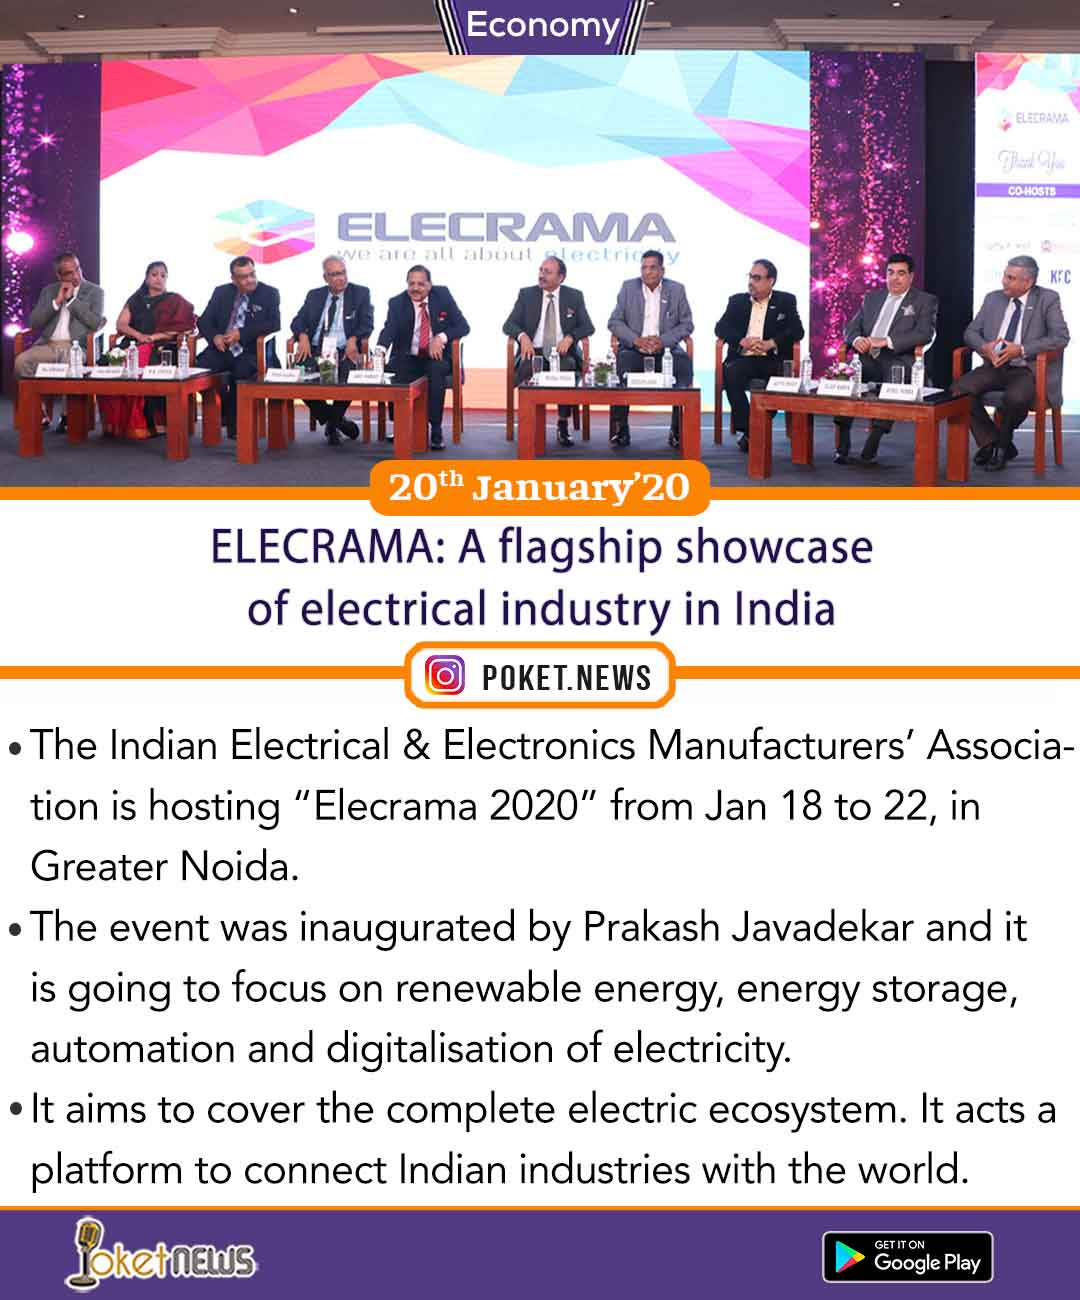 ELECRAMA: A flagship showcase of electrical industry in India